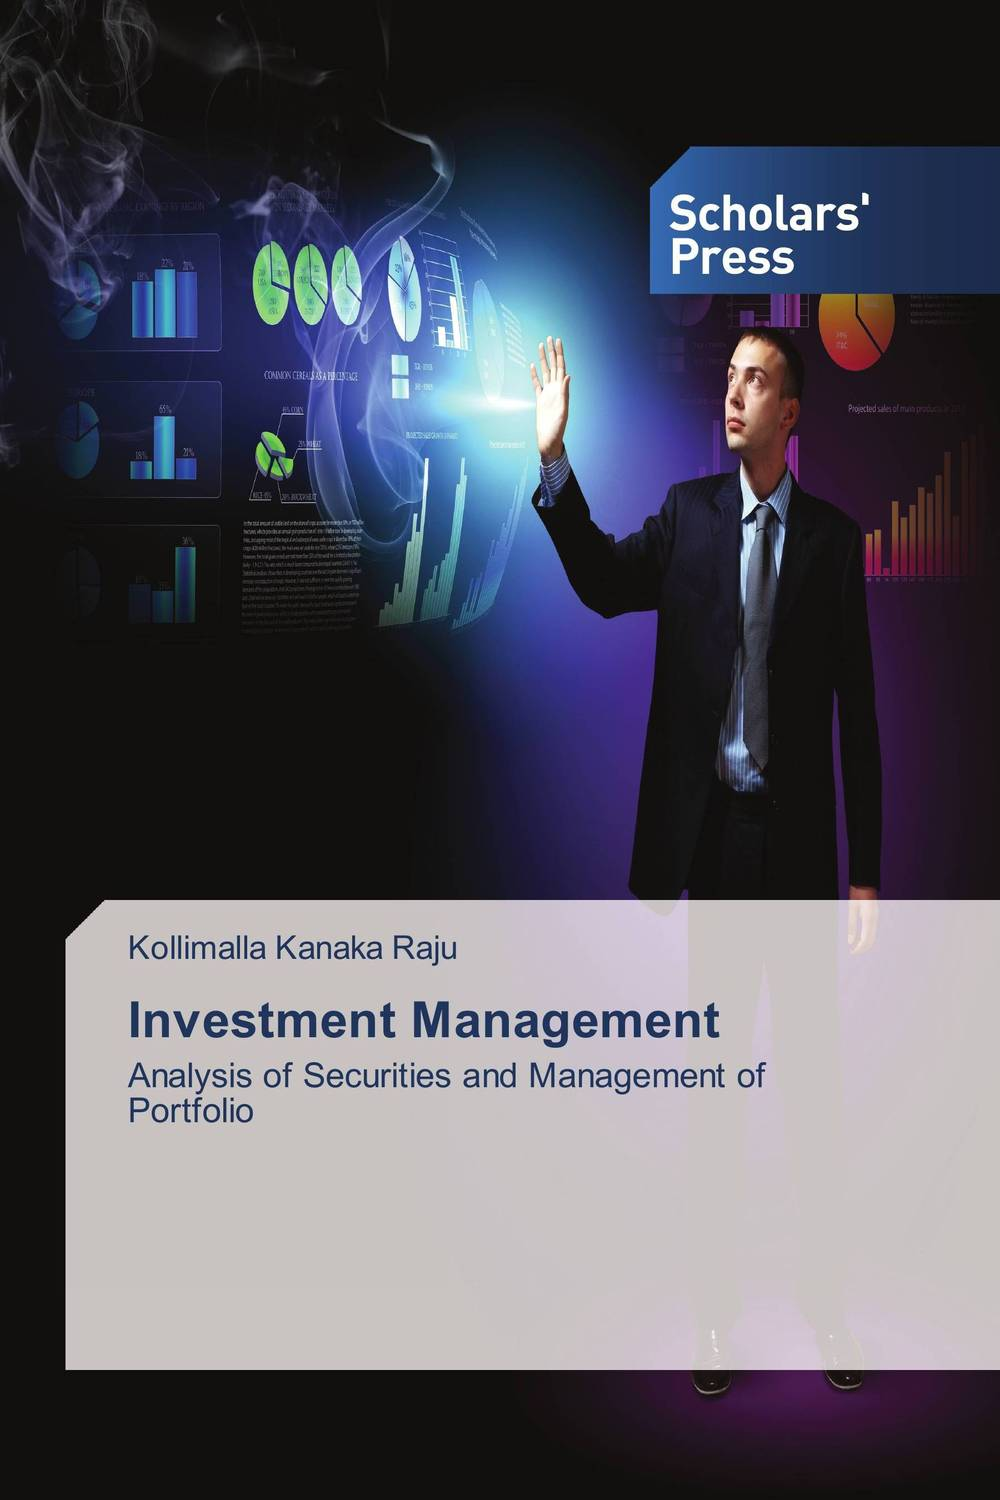 Investment  Management michael pompian m behavioral finance and wealth management how to build optimal portfolios that account for investor biases